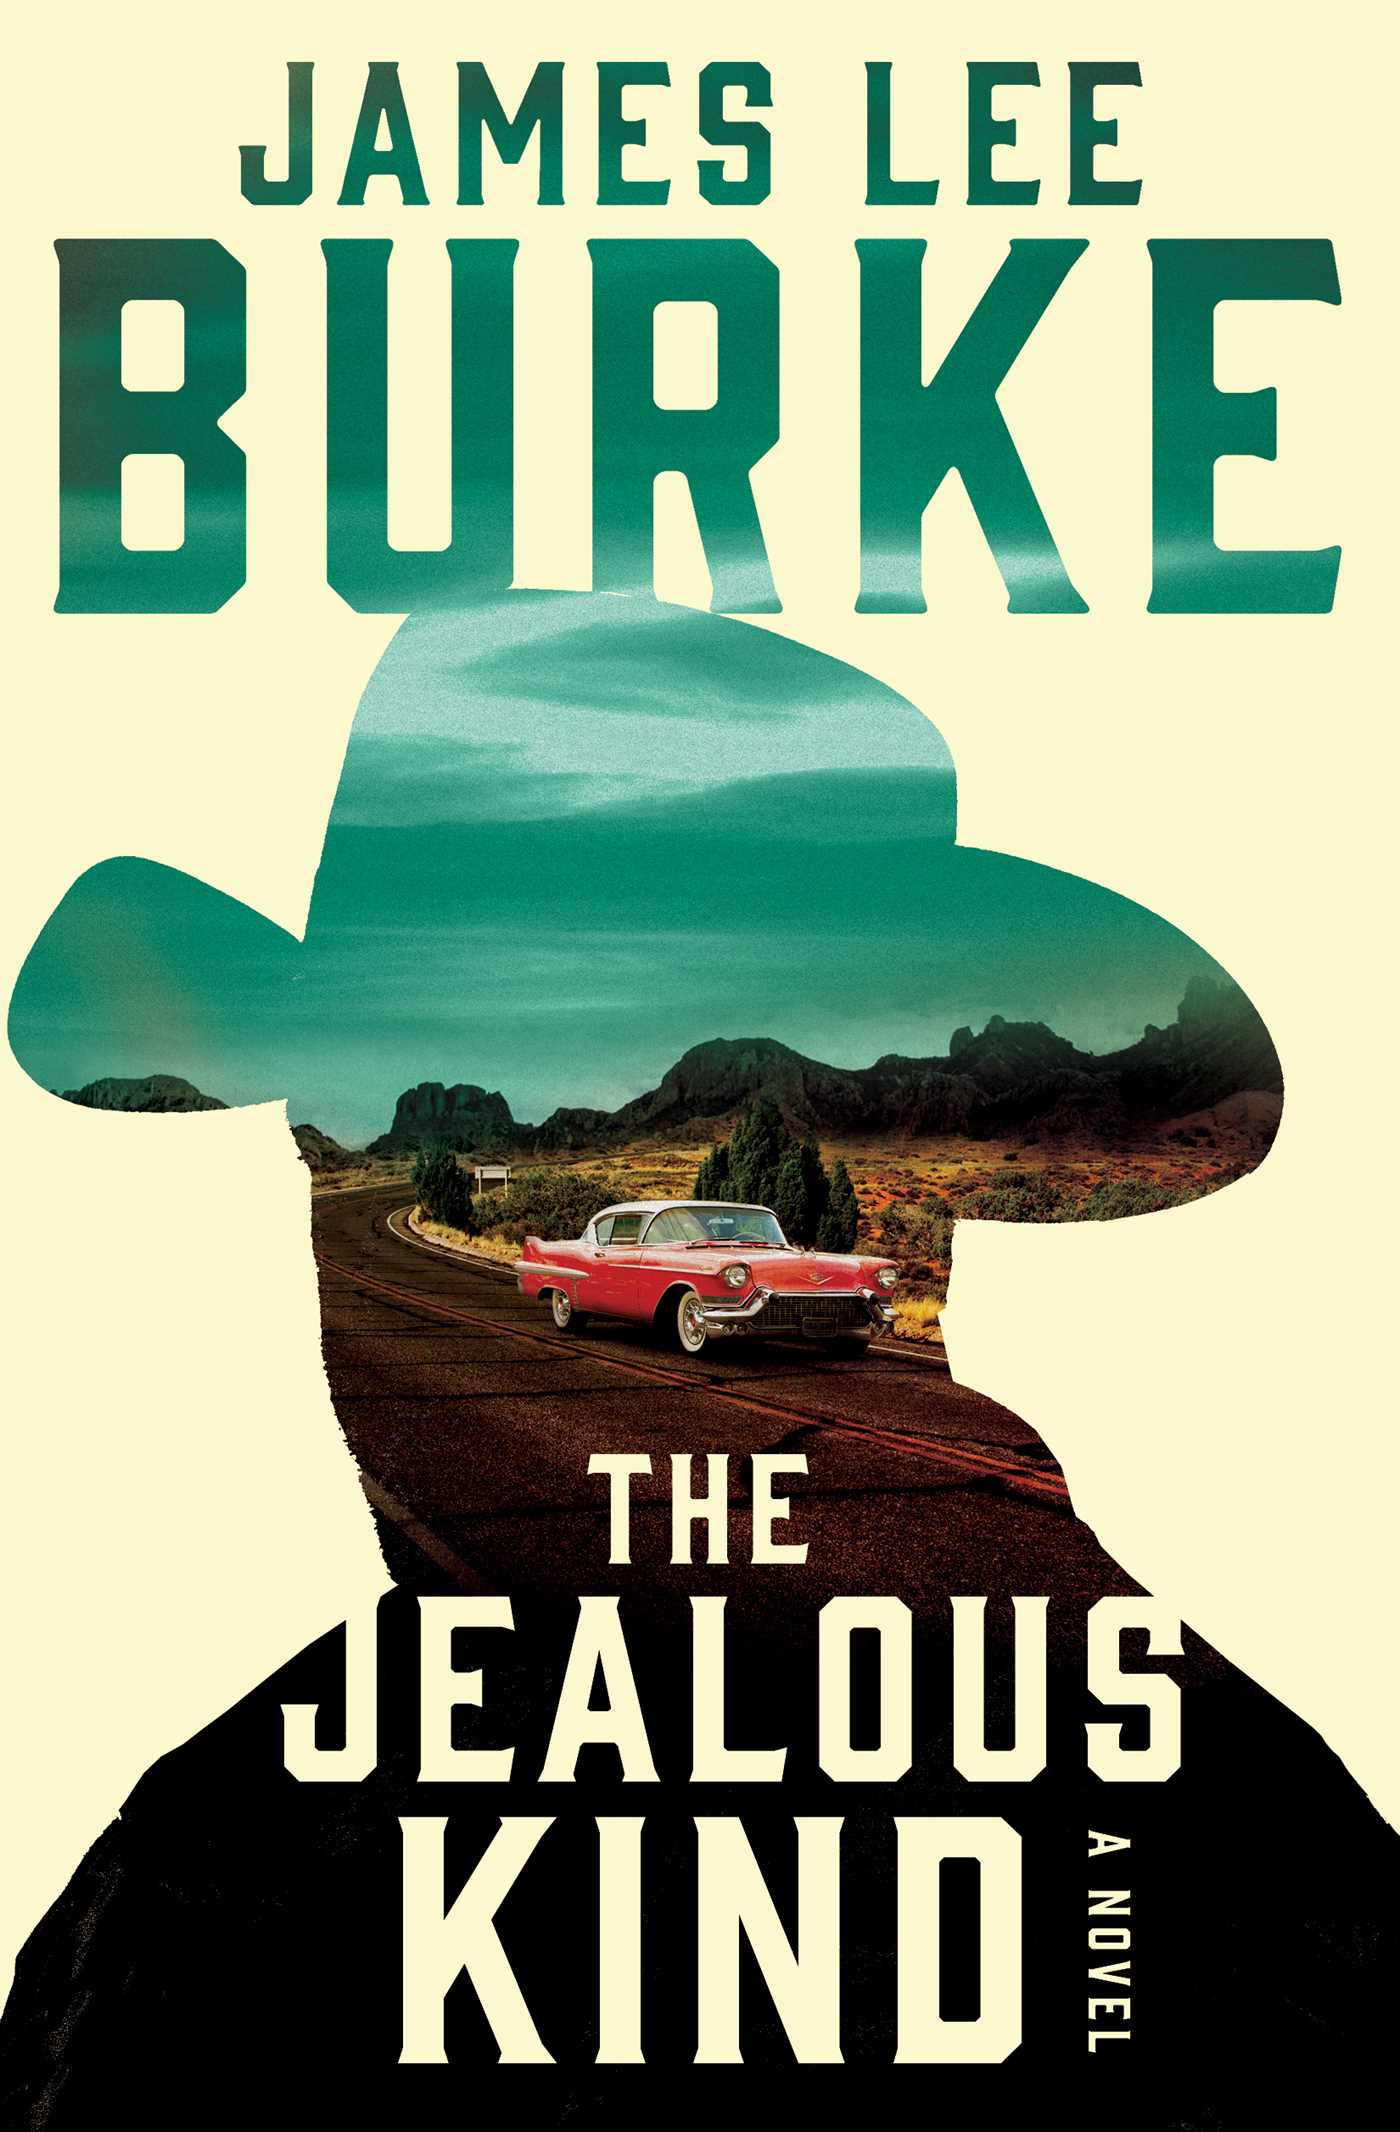 The Jealous Kind   Book by James Lee Burke   Official Publisher Page